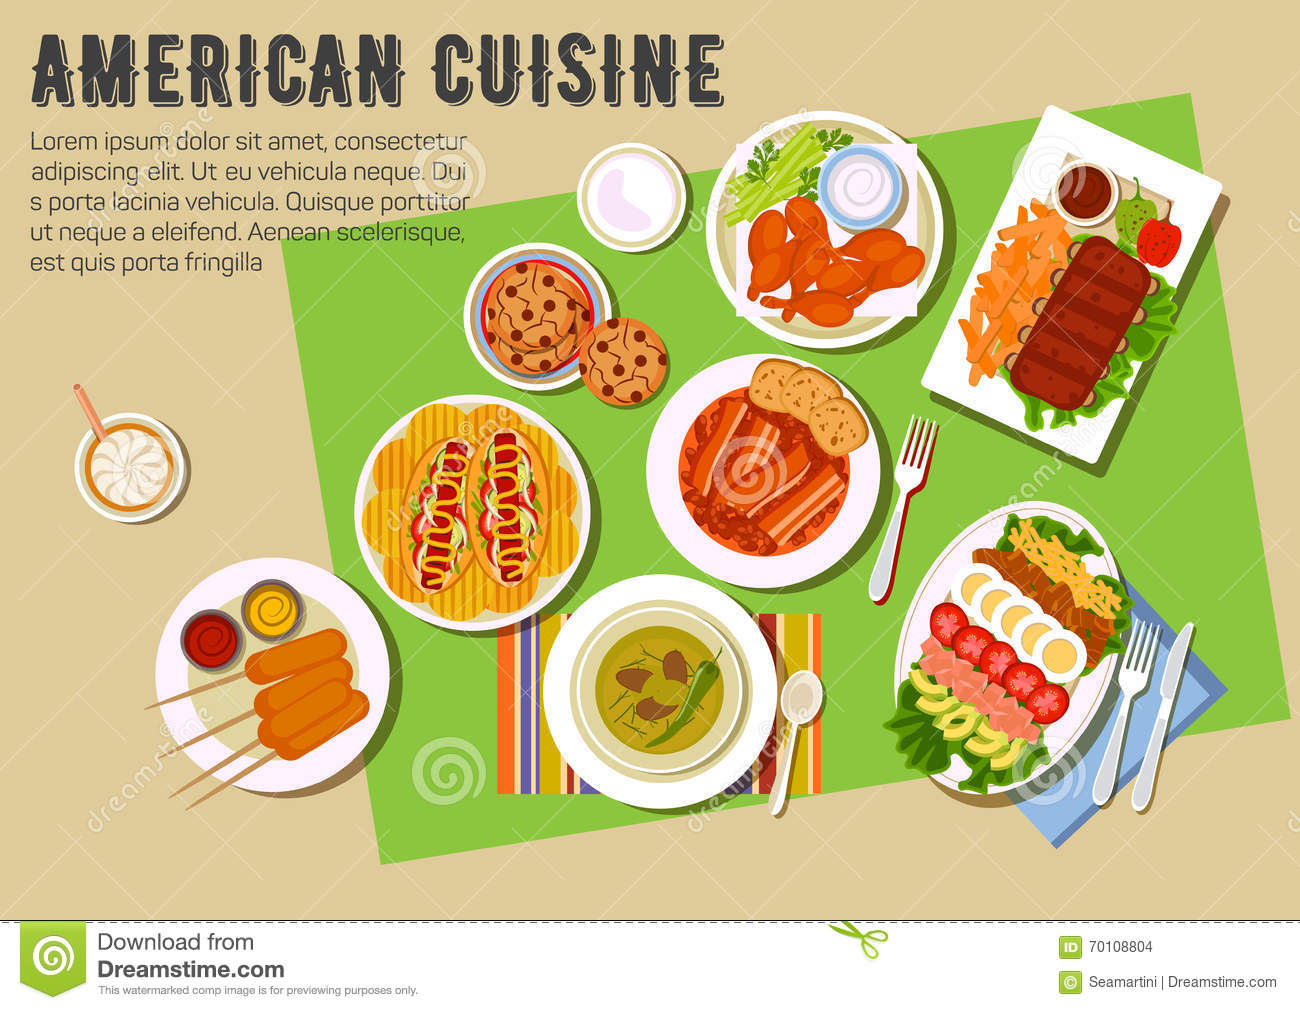 Bbq party flat icon with american cuisine dishes stock for American cuisine